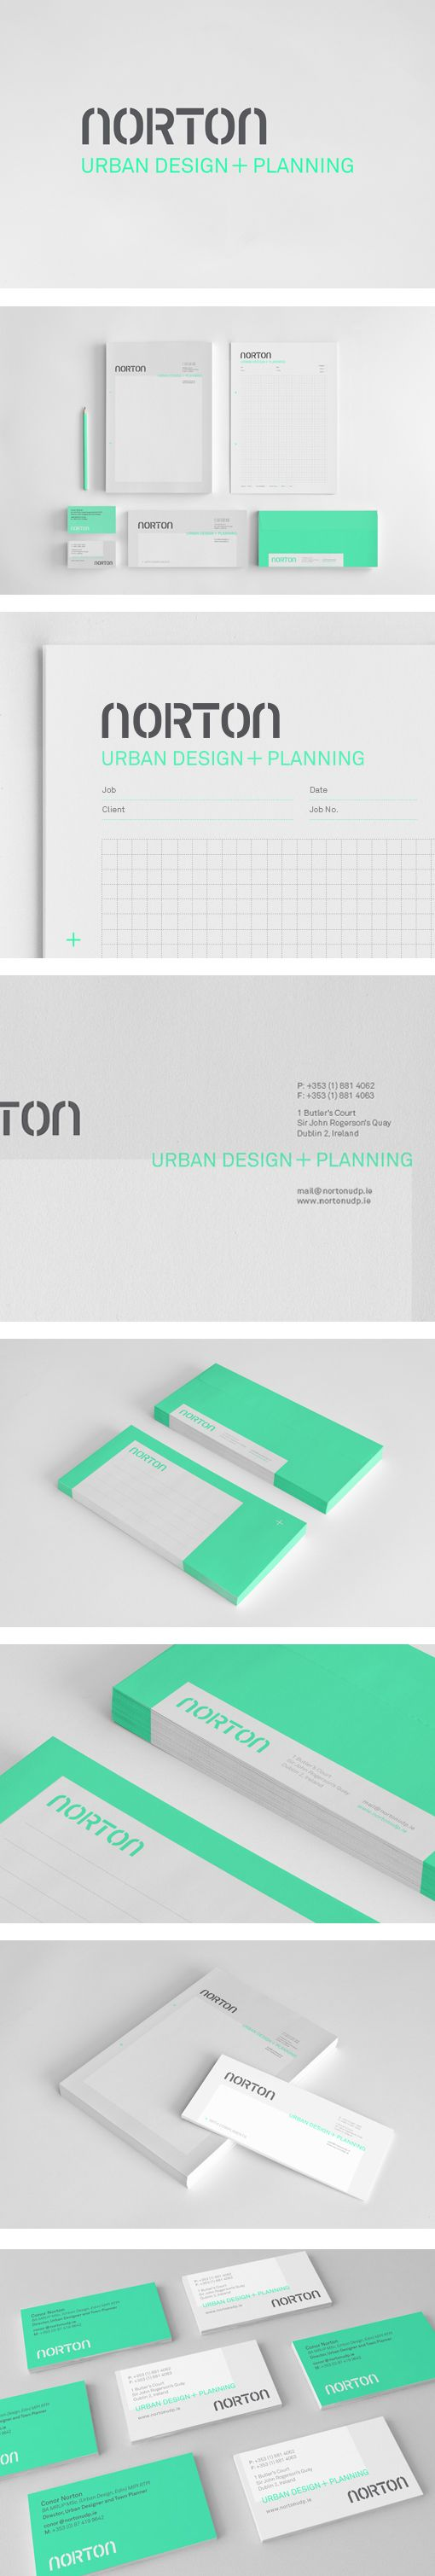 Norton UDP is and Urban Design and Planning consultancy based in Dublin, Ireland , that works to meet the needs of both private and public sectors.